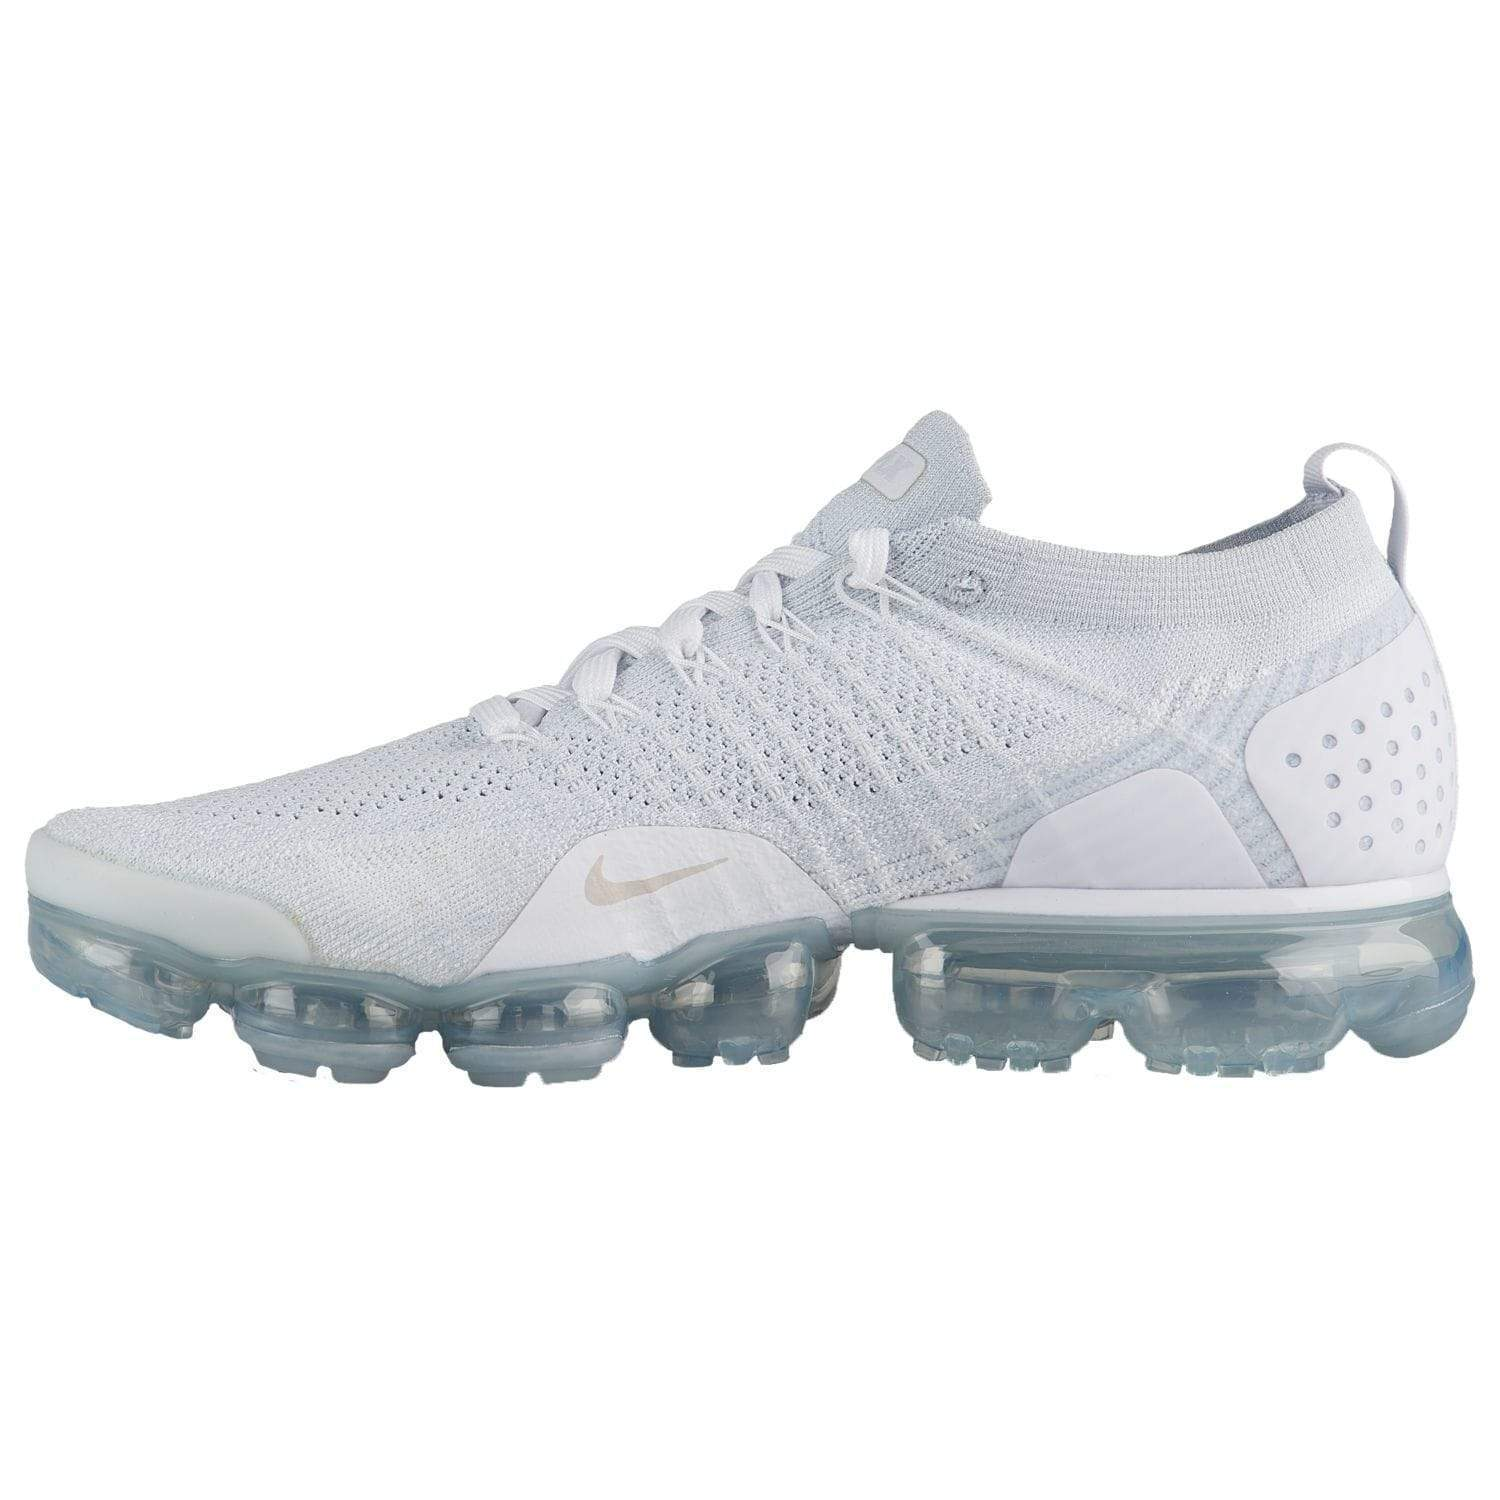 978c8b86ef5d Air Vapormax Flyknit 2 - Mens Running Shoes - 942842-105 - White ...